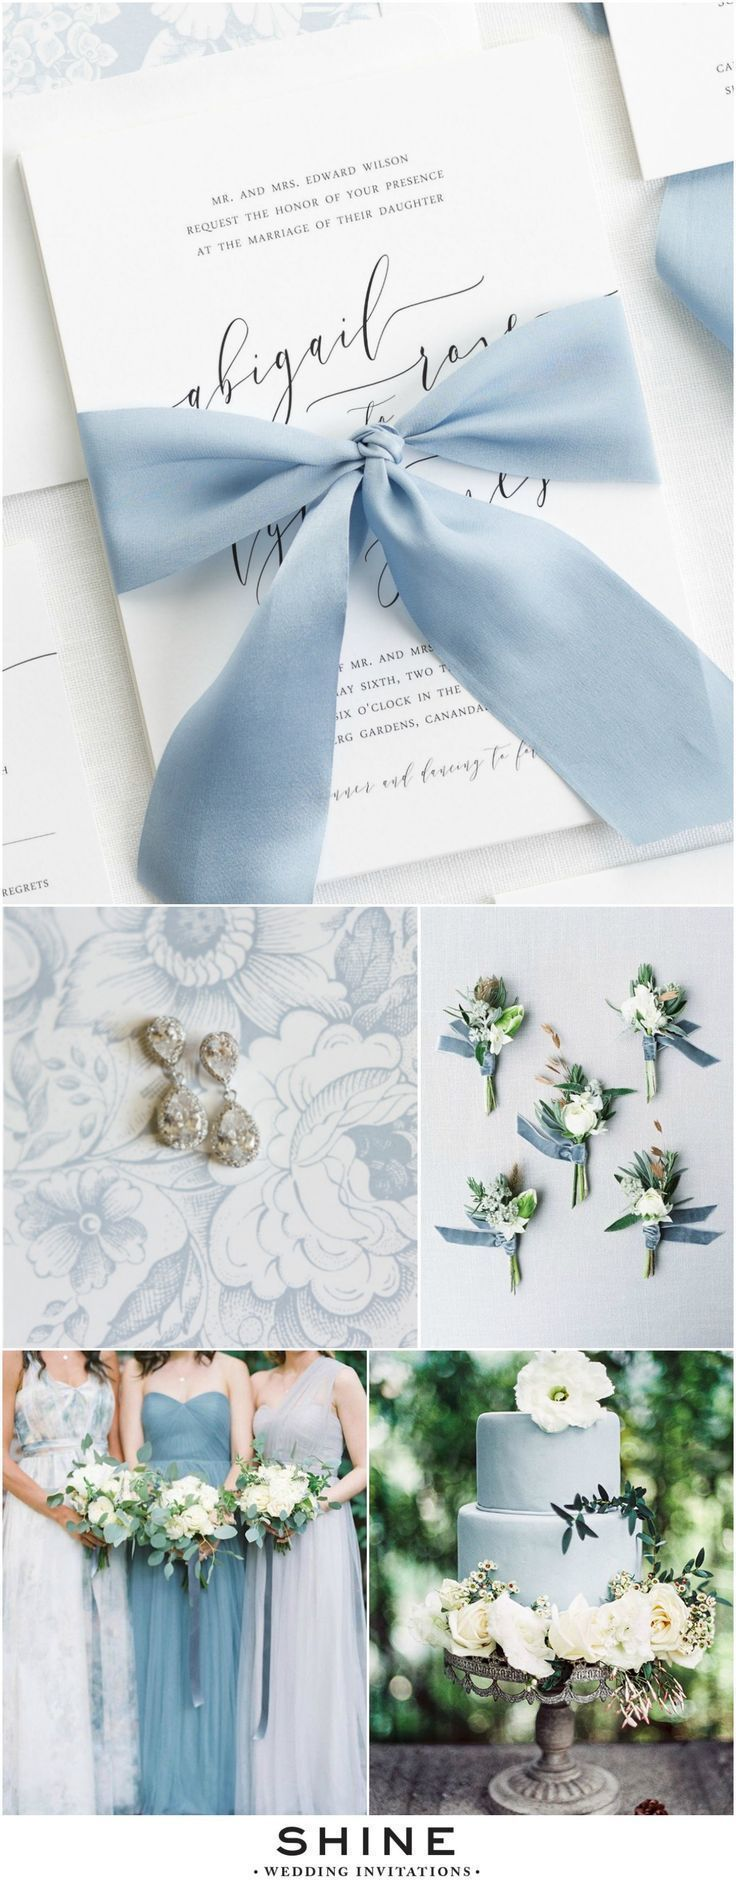 Dusty Blue and Gray Wedding Inspiration | Romantic Dusty Blue Wedding Invitations with Modern Calligraphy and a custom dyed 100% silk charmeuse ribbon | Floral Envelope Liner, Dusty Blue Bridesmaids Dresses, Blue Cake, Velvet Boutonnieres #romanticweddings